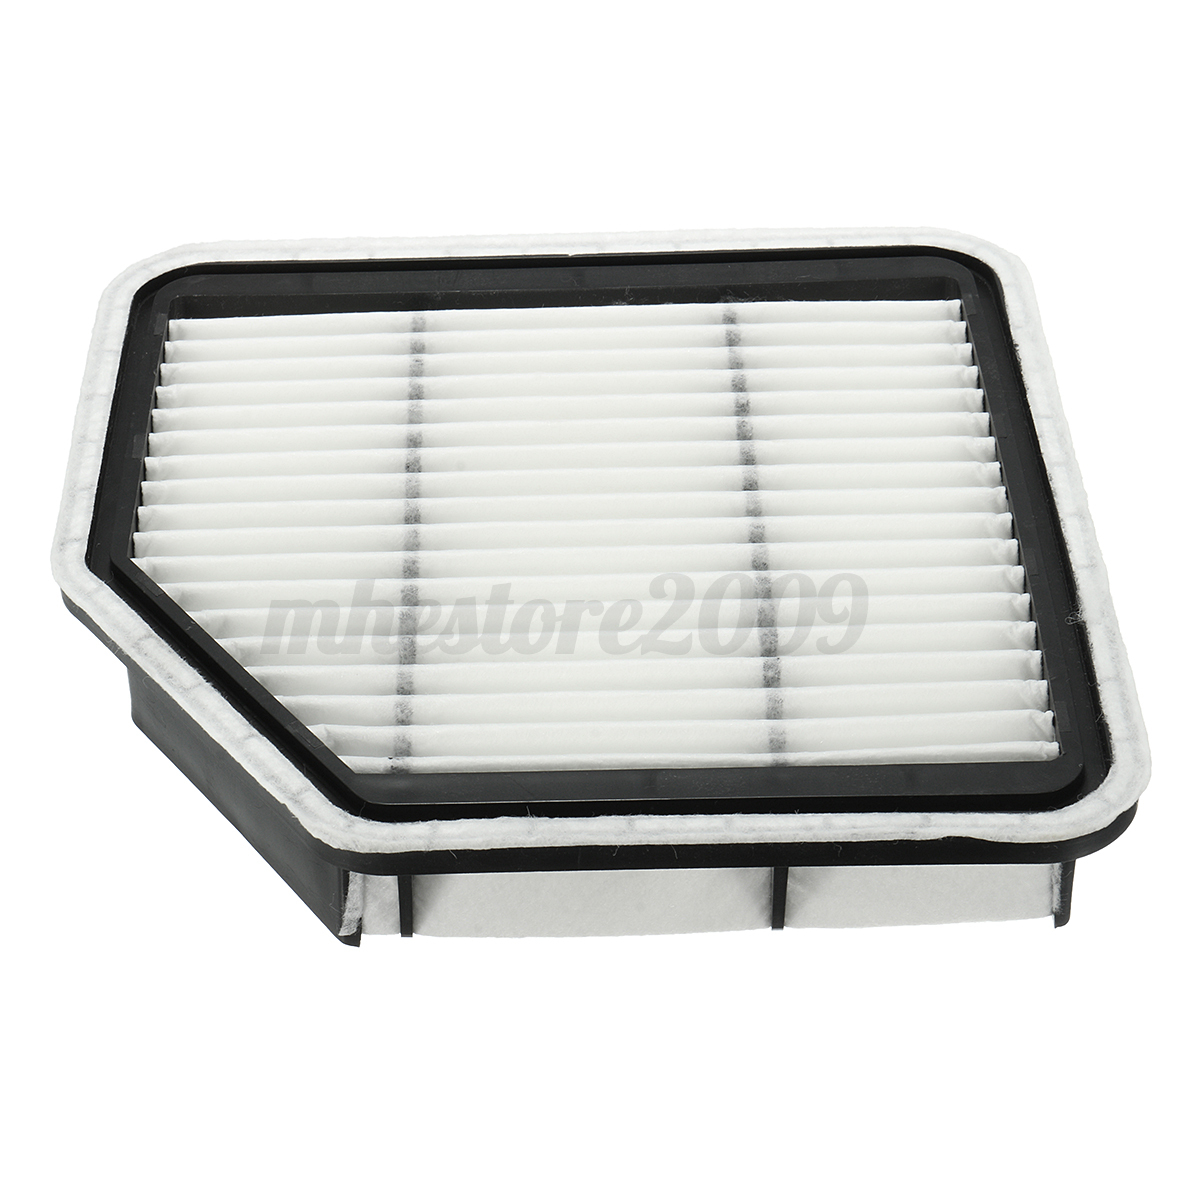 Engine air filter for lexus is250 is350 06 13 gs350 07 11 for Lexus is250 cabin air filter